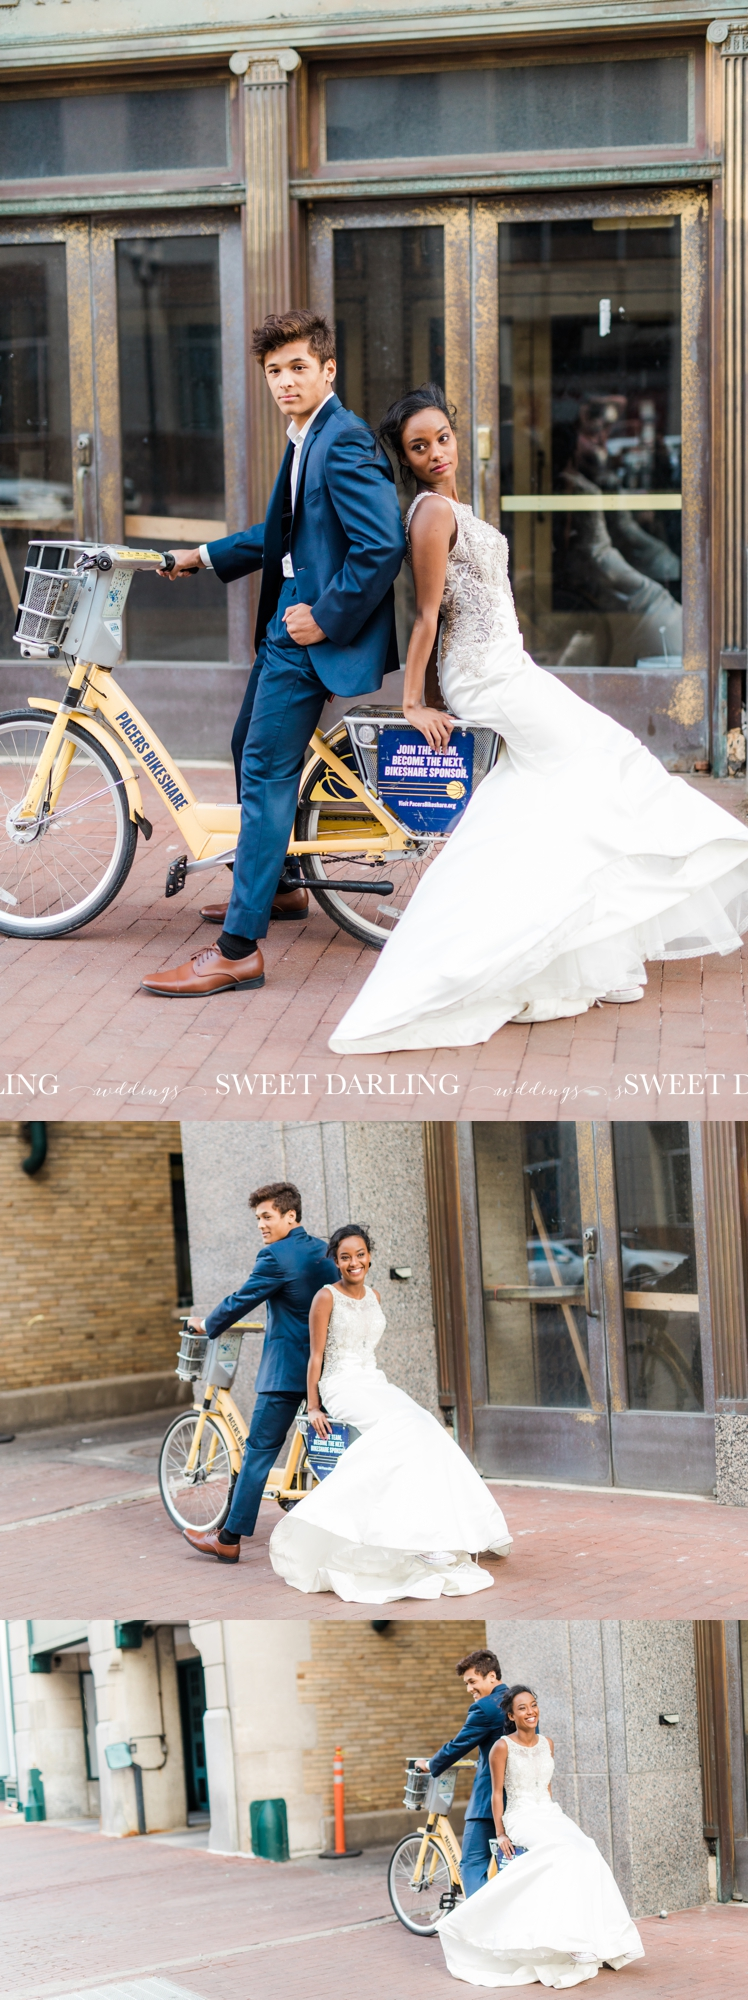 Indianapolis-Indiana-Wedding-photographer-urban-sweet-darling-champaign-IL_1492.jpg